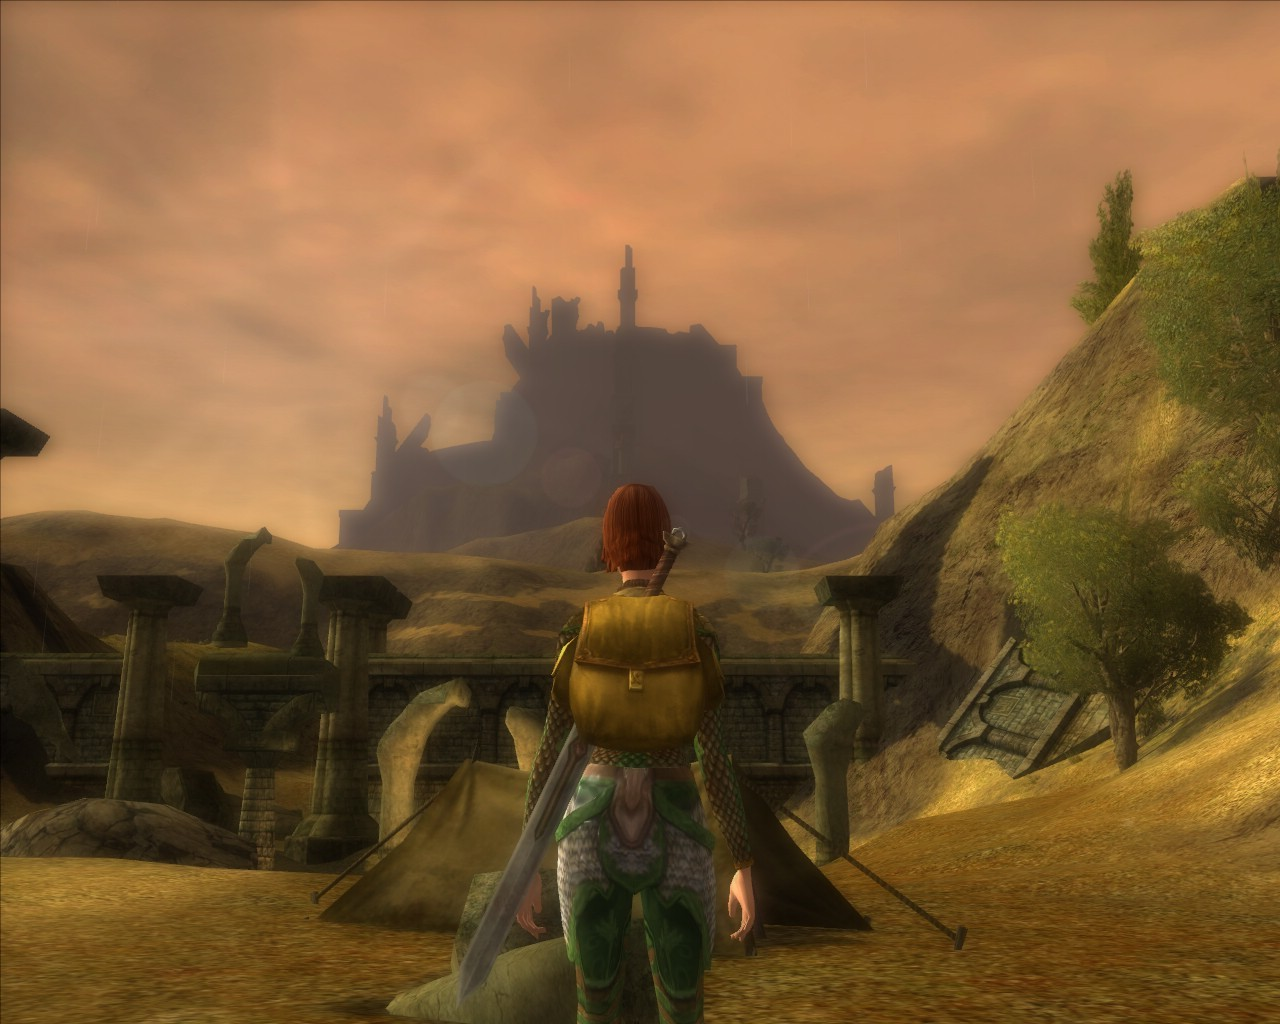 Lord of the Rings Online - A Half-Orc Camp near Weathertop.